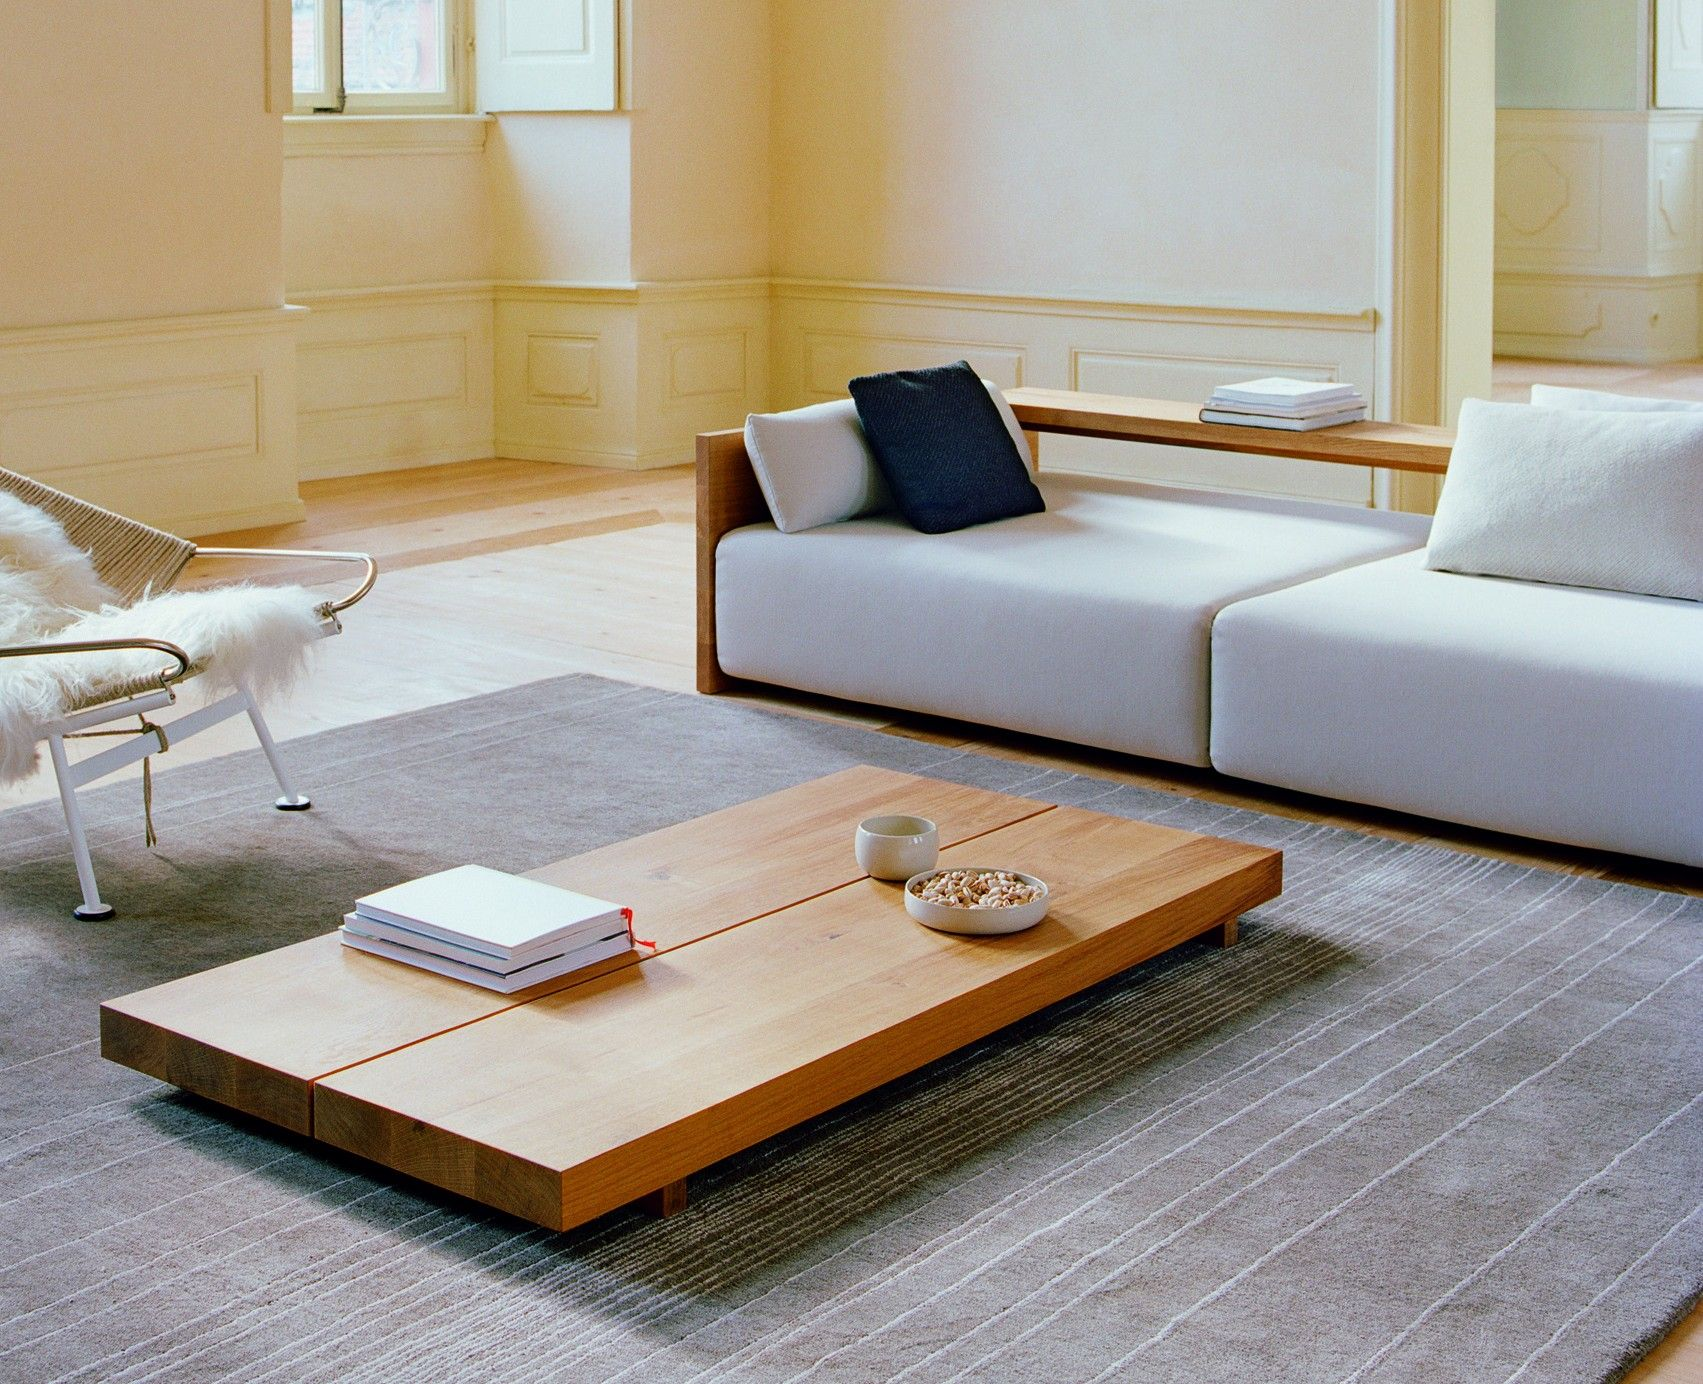 In Its Form And Material, The Kashan Sofa Epitomizes The